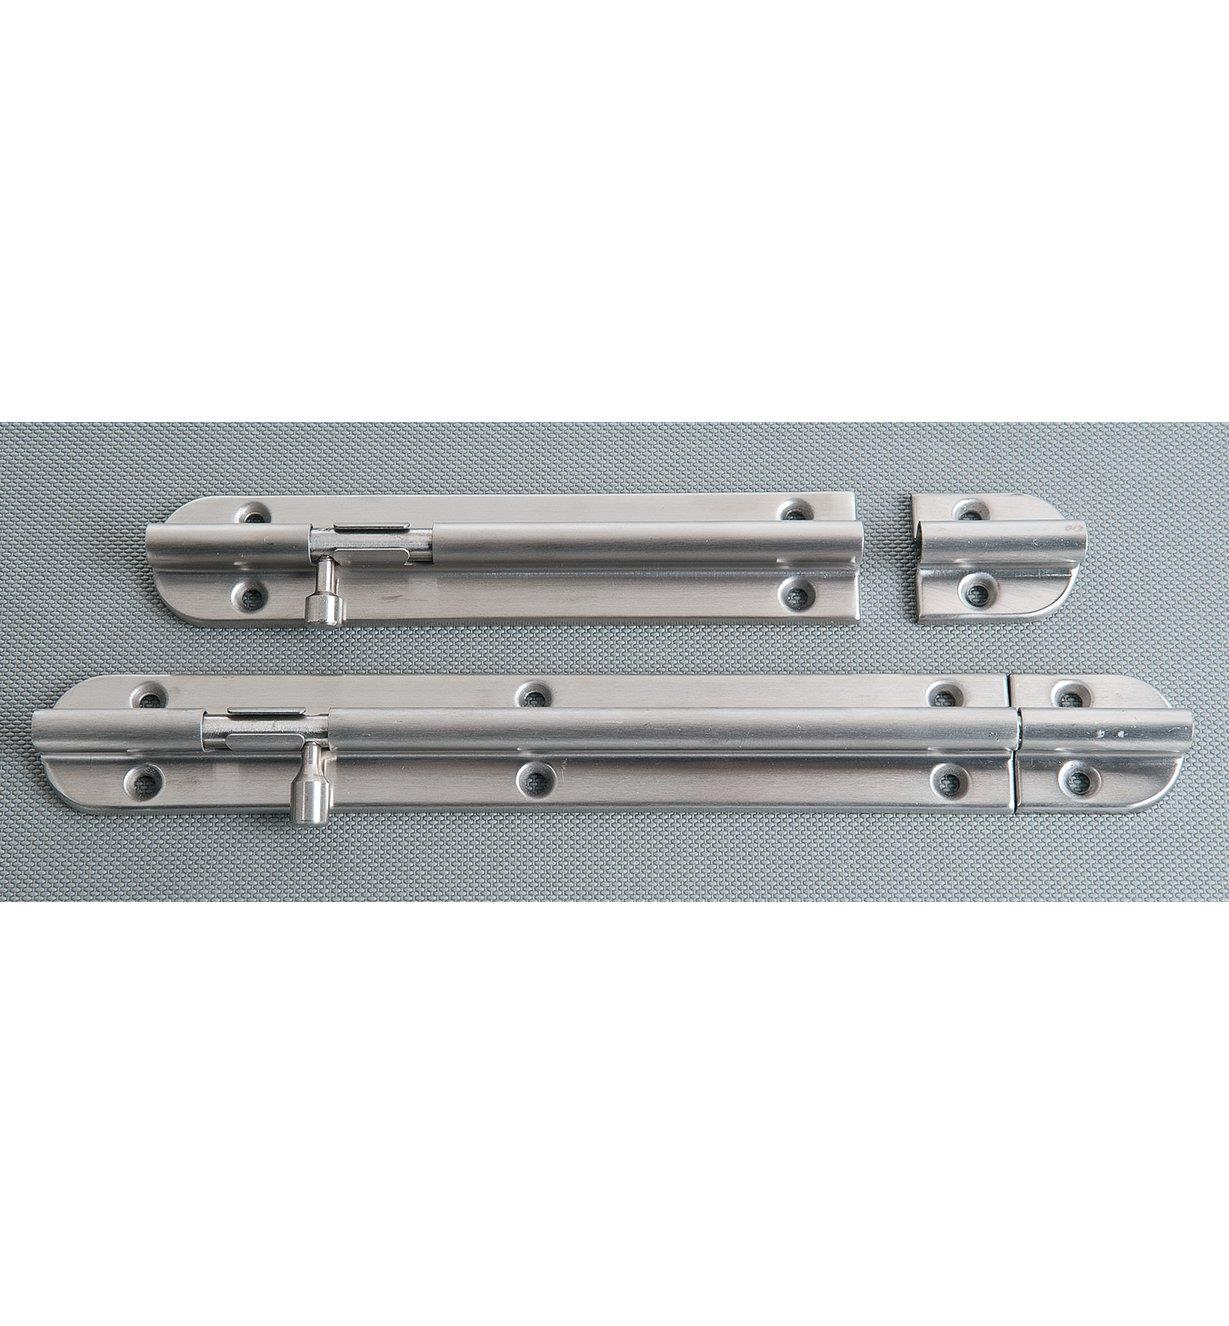 Stainless-Steel Barrel Bolts